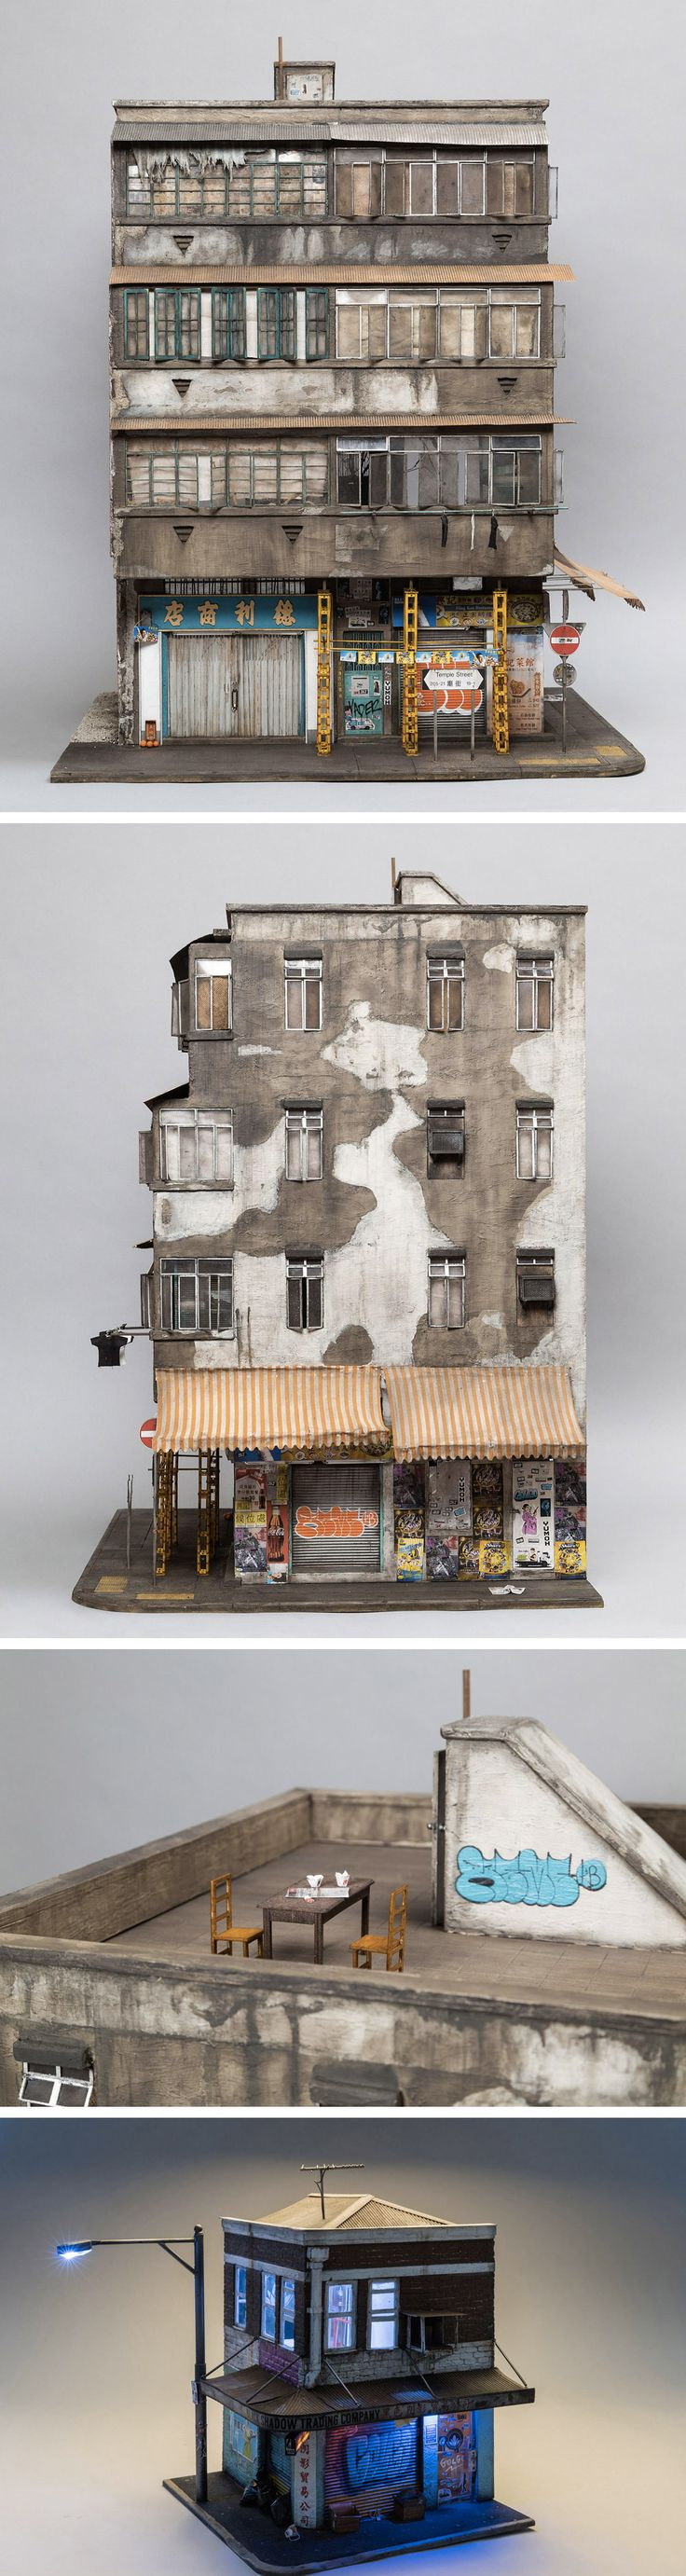 Miniature Displays of Contemporary Urban Buildings by Joshua Smith